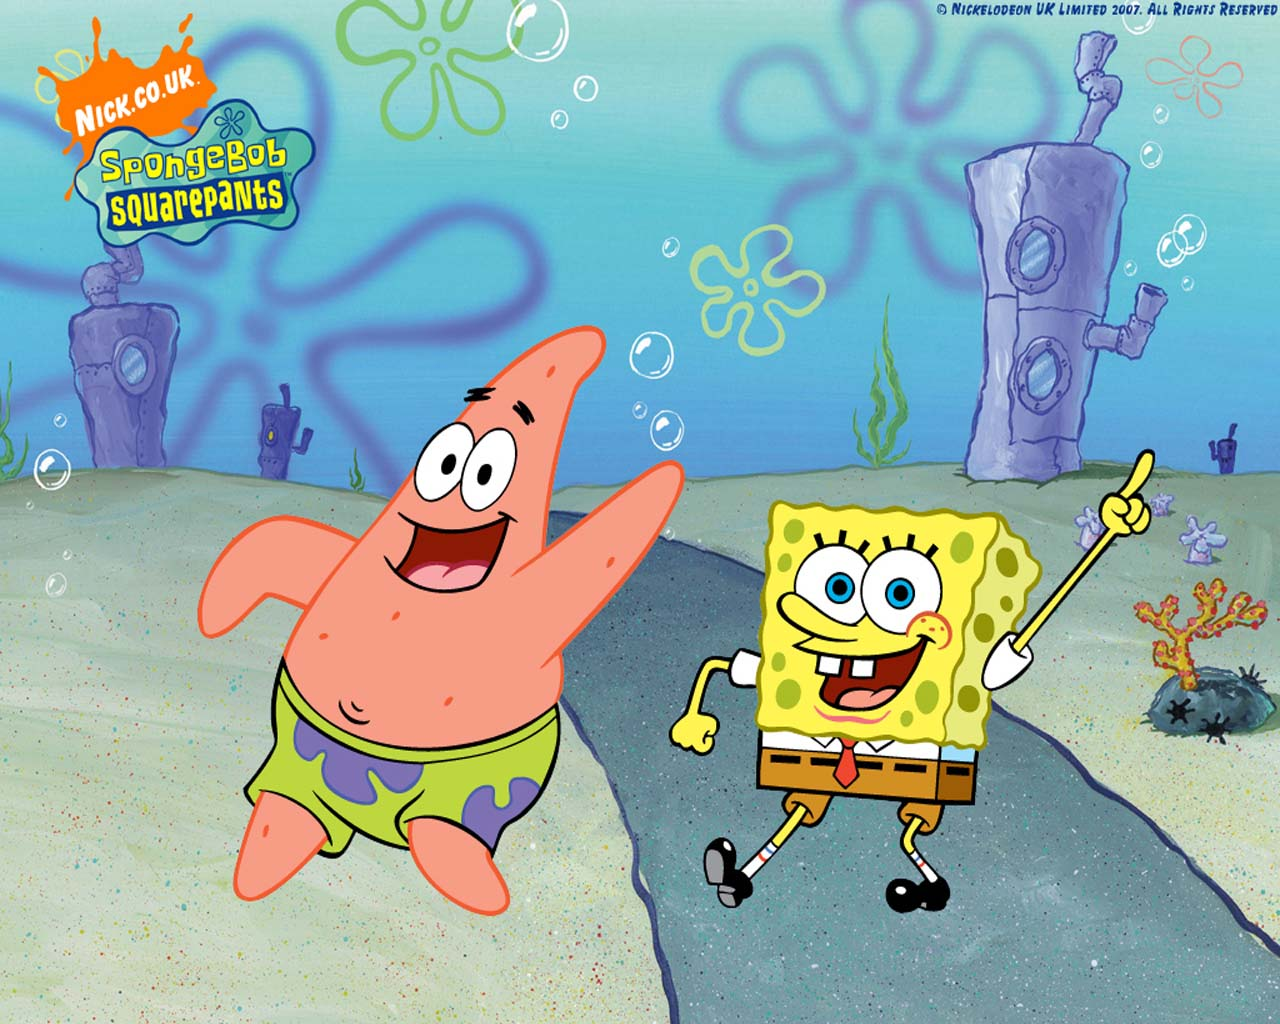 Spongebob and Patrick. This entry was posted on